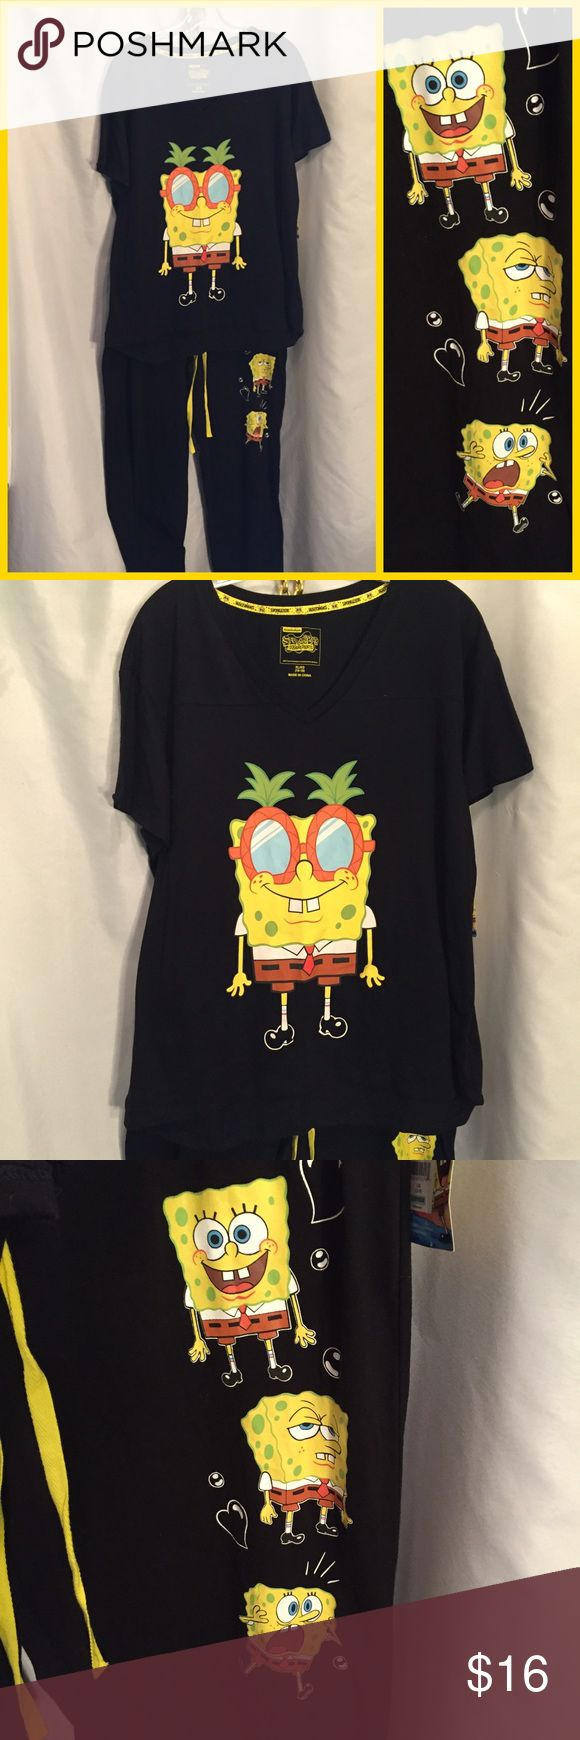 """Sponge Bob New pajamas L/XL Two-piece lightweight SpongeBob pajama set. Top is size extra large with V neck, 42x26"""" bottoms have elastic drawstring waist in size large and are Capri length 34x 27"""". Both pieces are new with tags, Cotton/polyester. Intimates & Sleepwear Pajamas"""